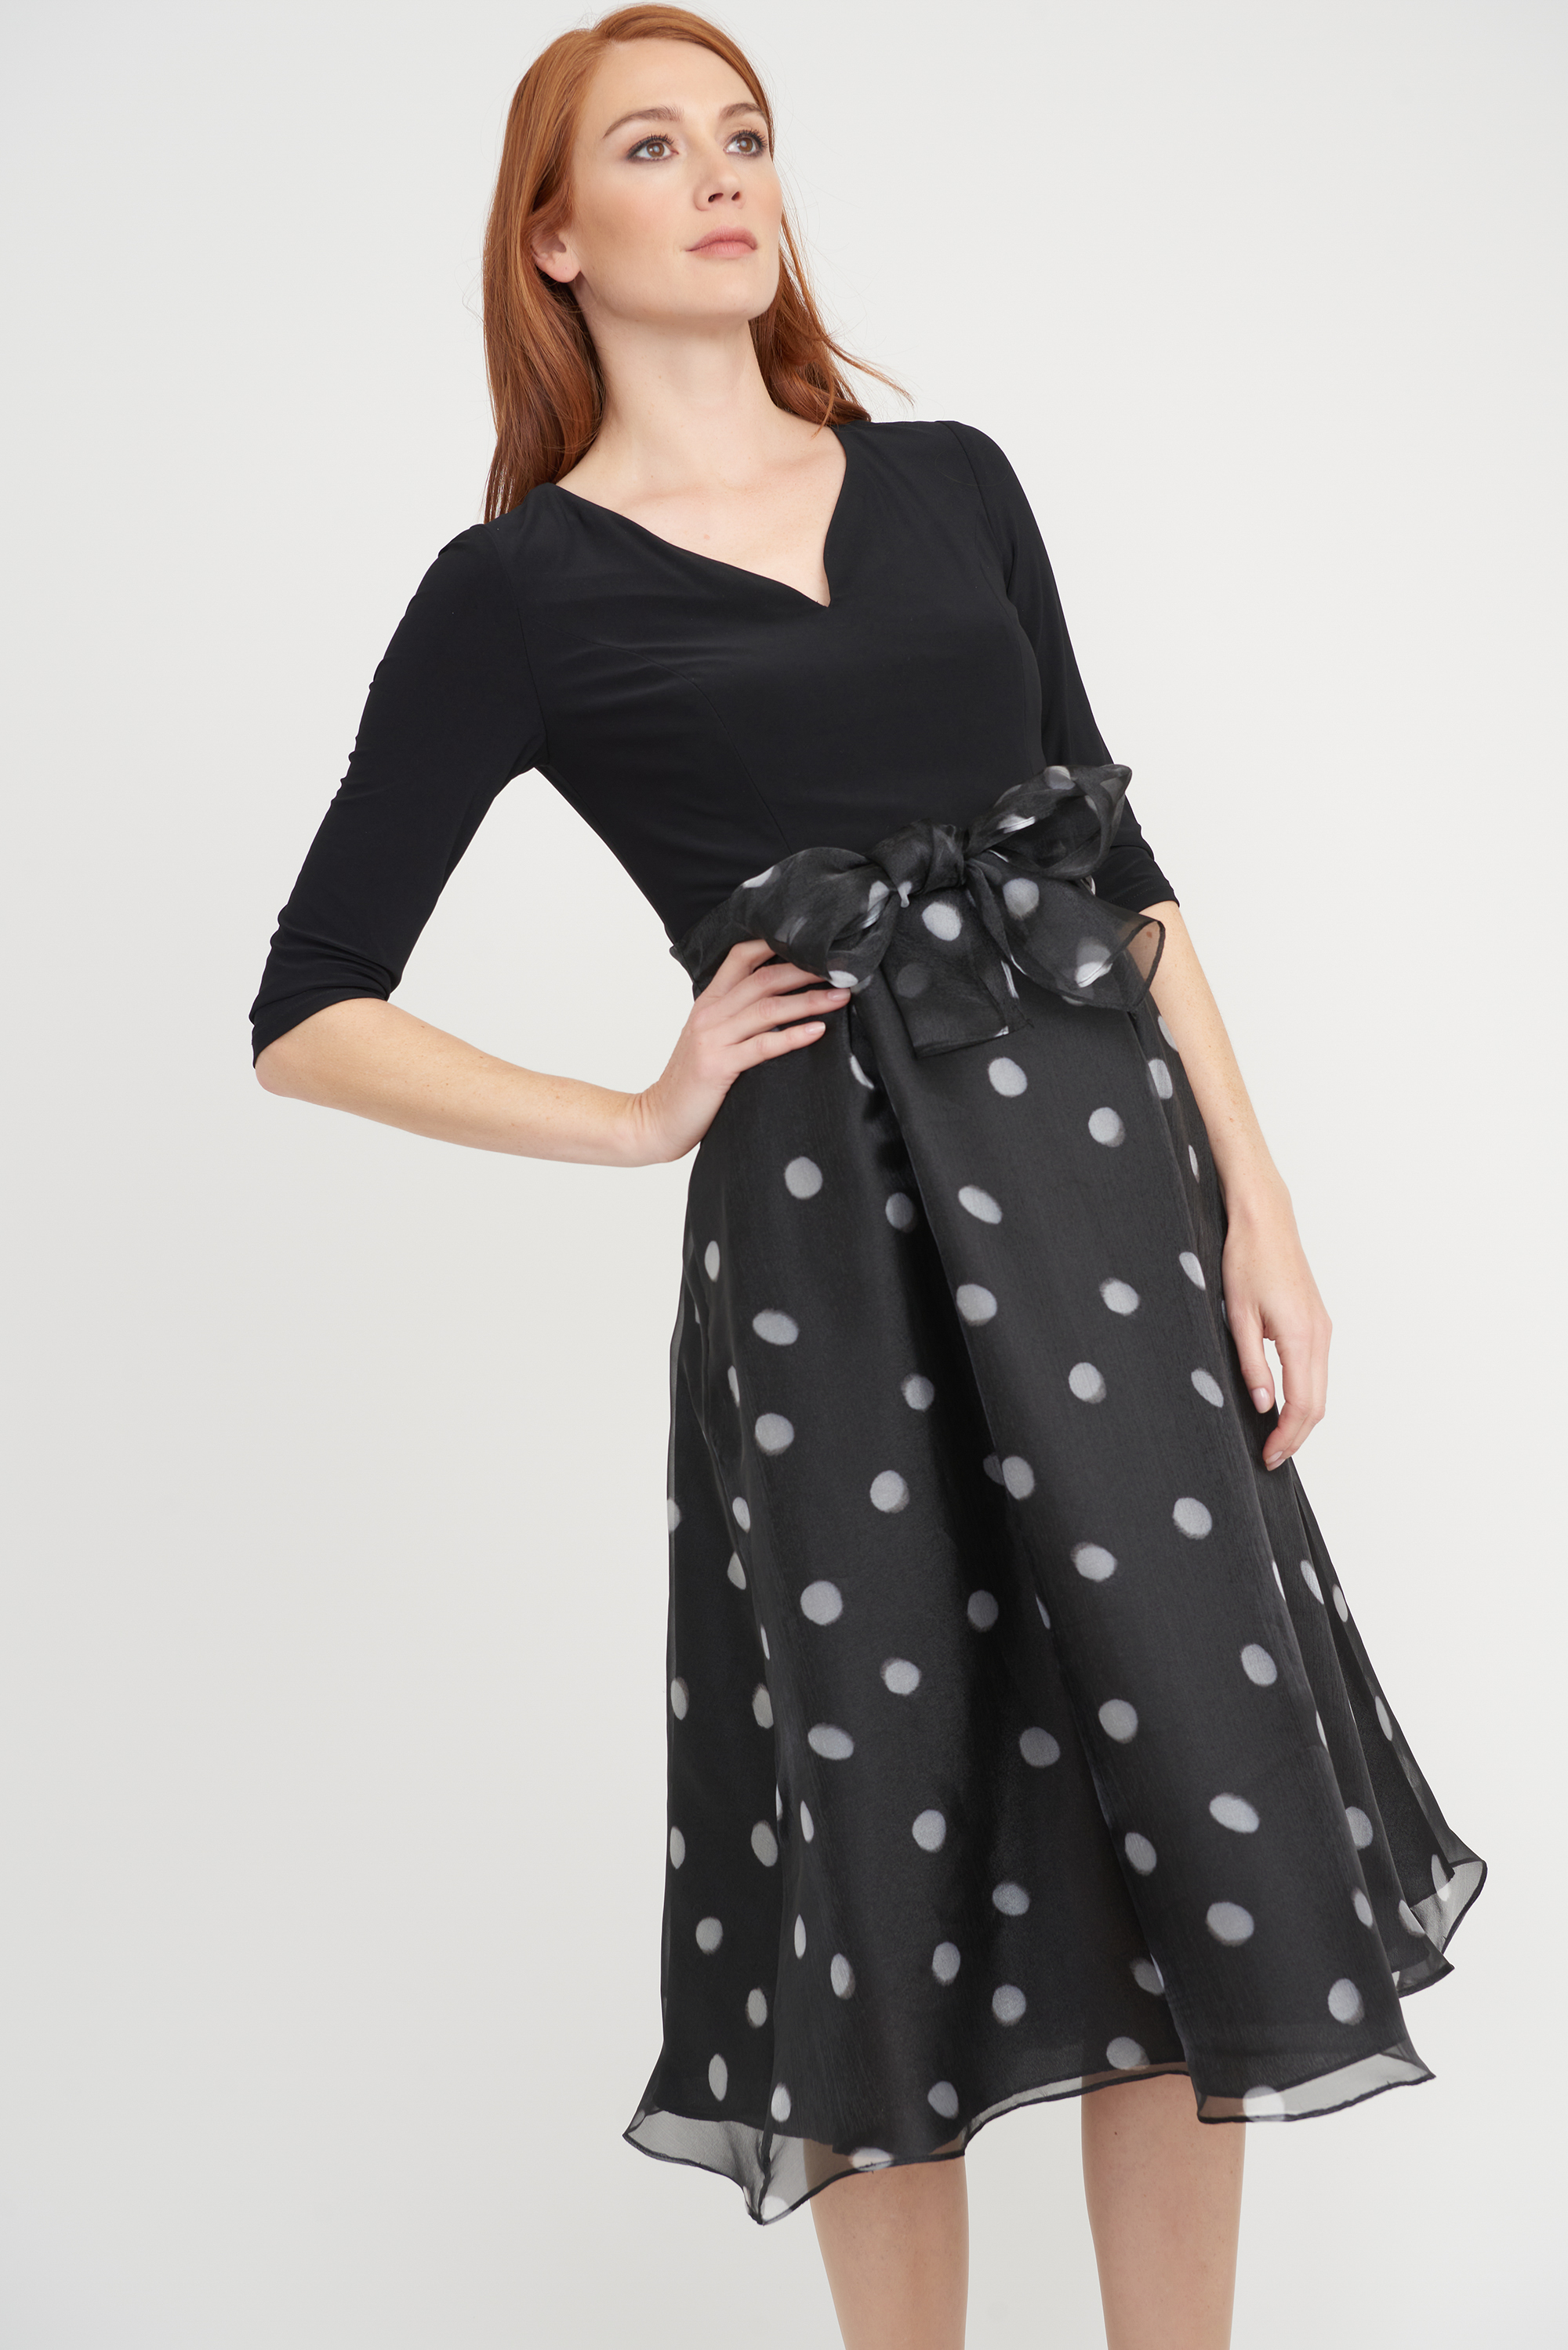 Joseph Ribkoff Womens Polka-Dot Dress, Style 203440 Color Black/White